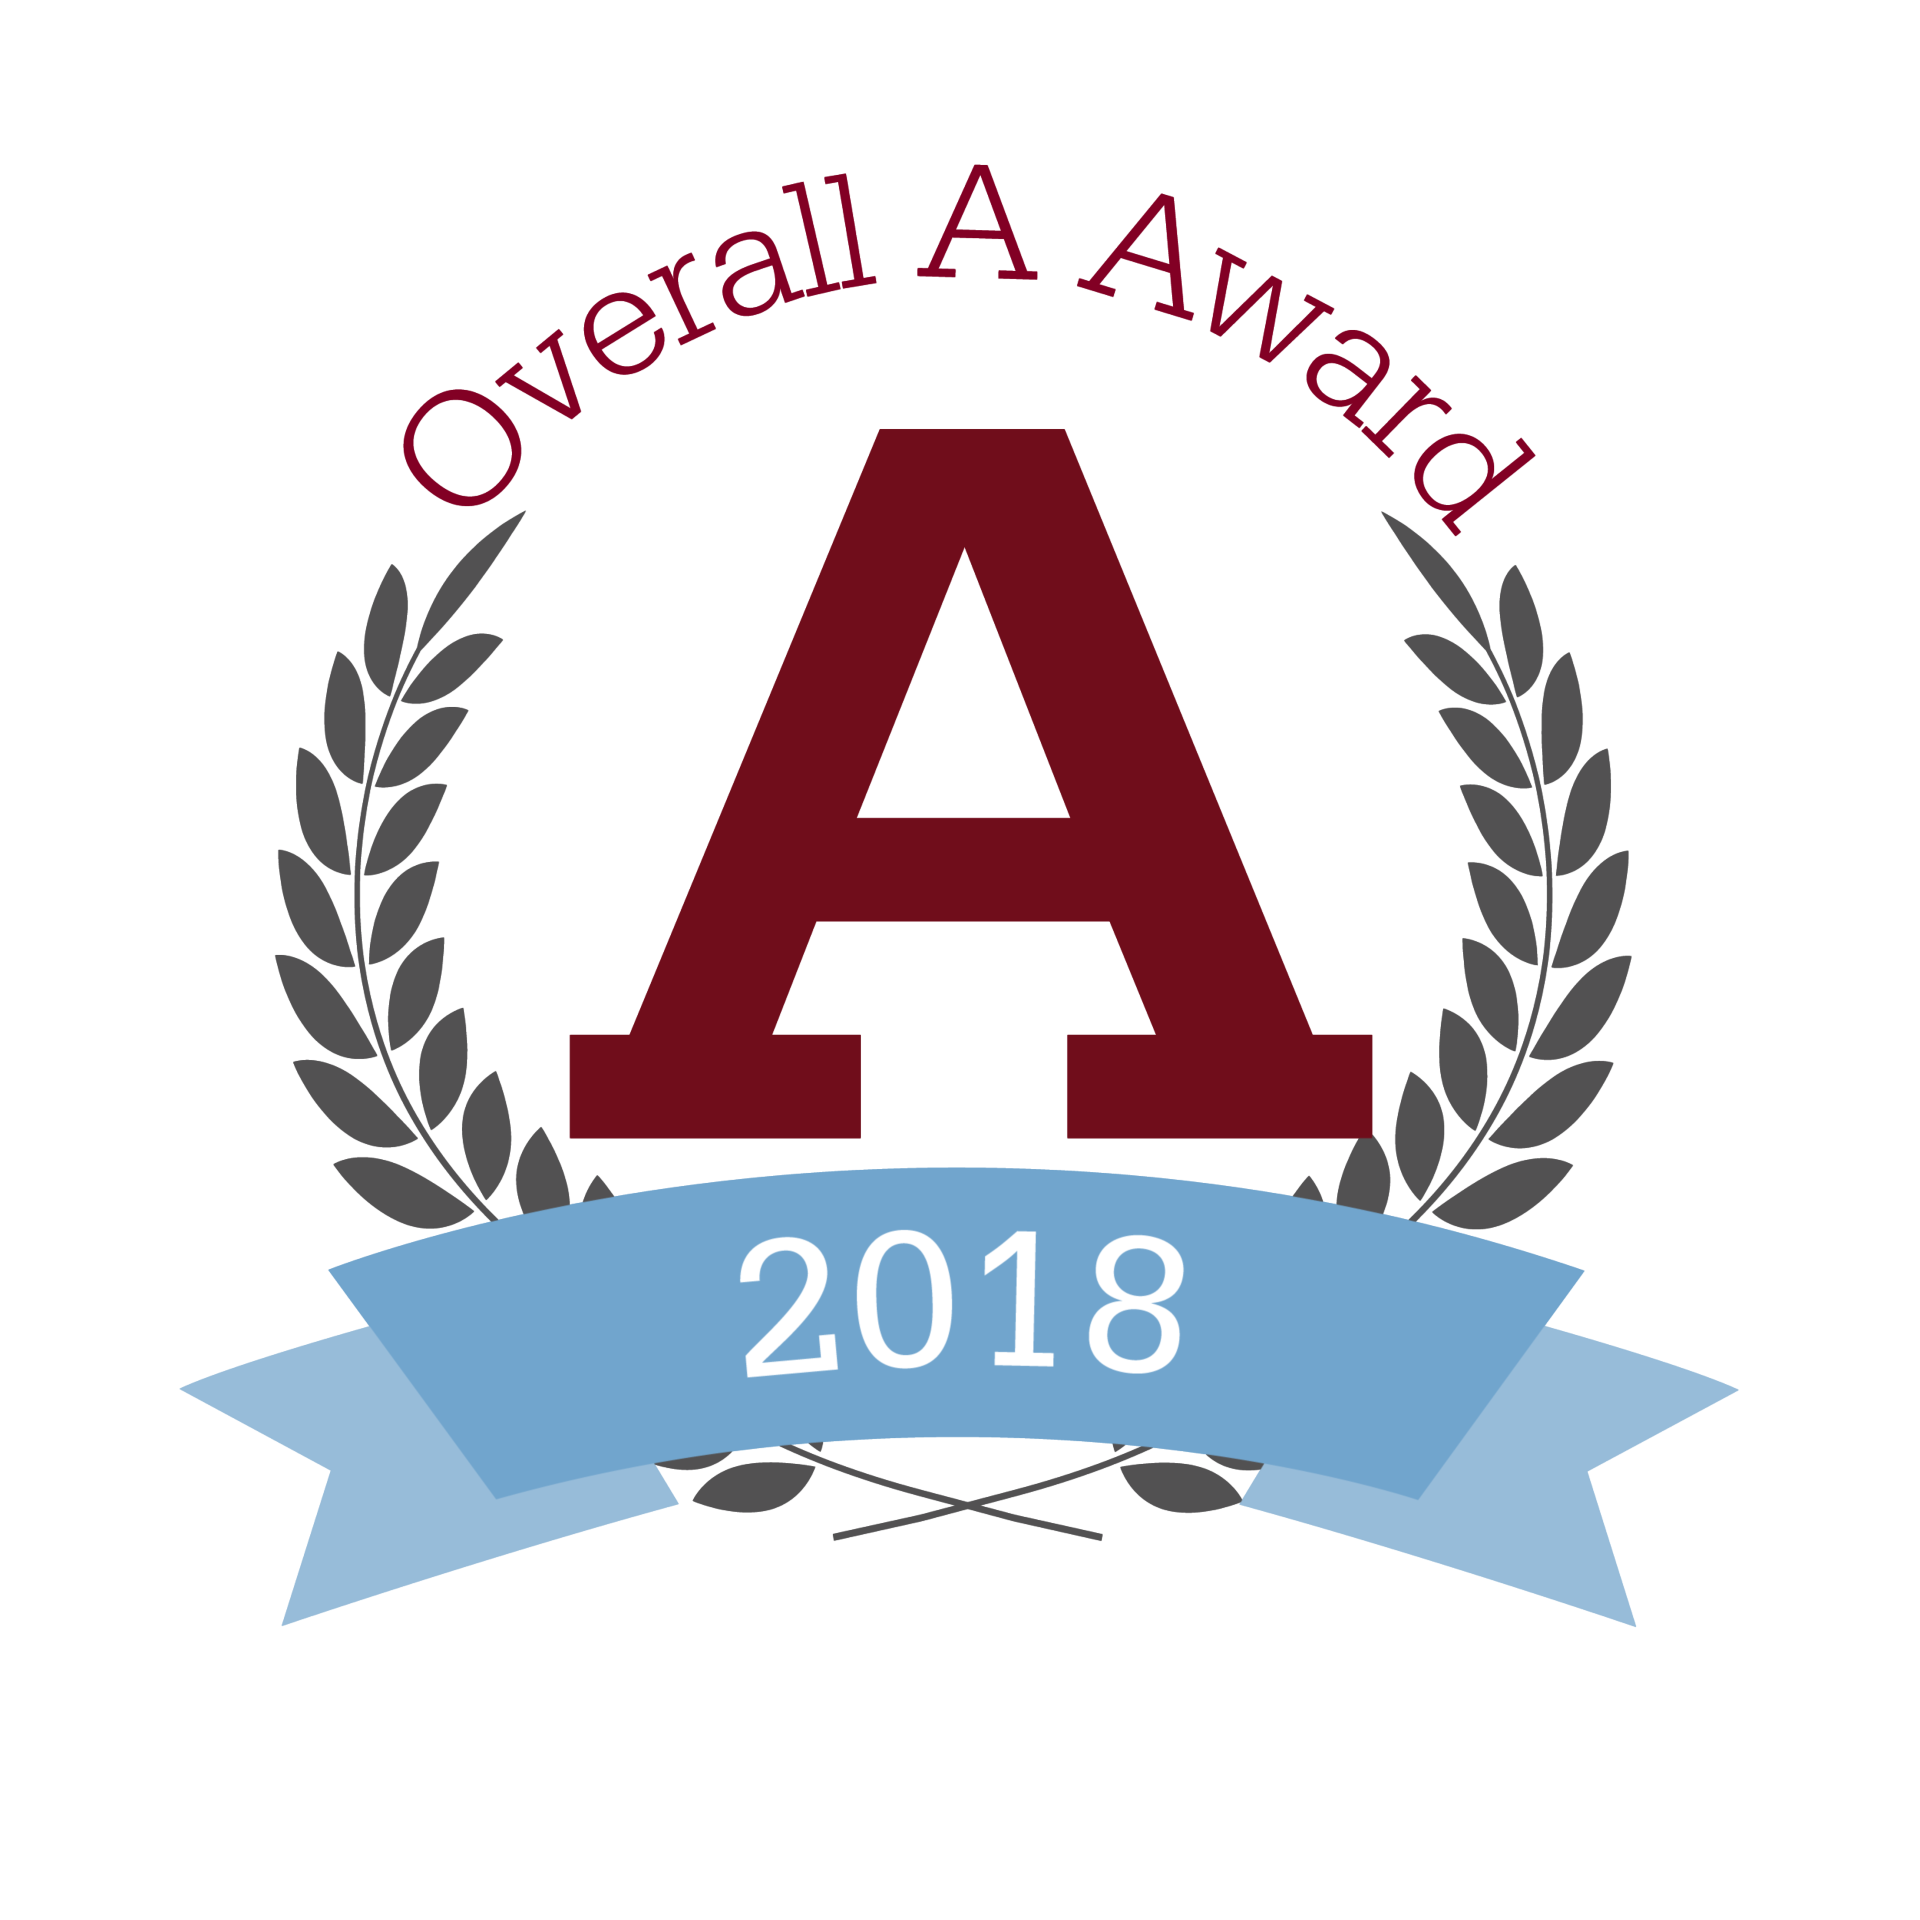 Overall A Award graphic 2018